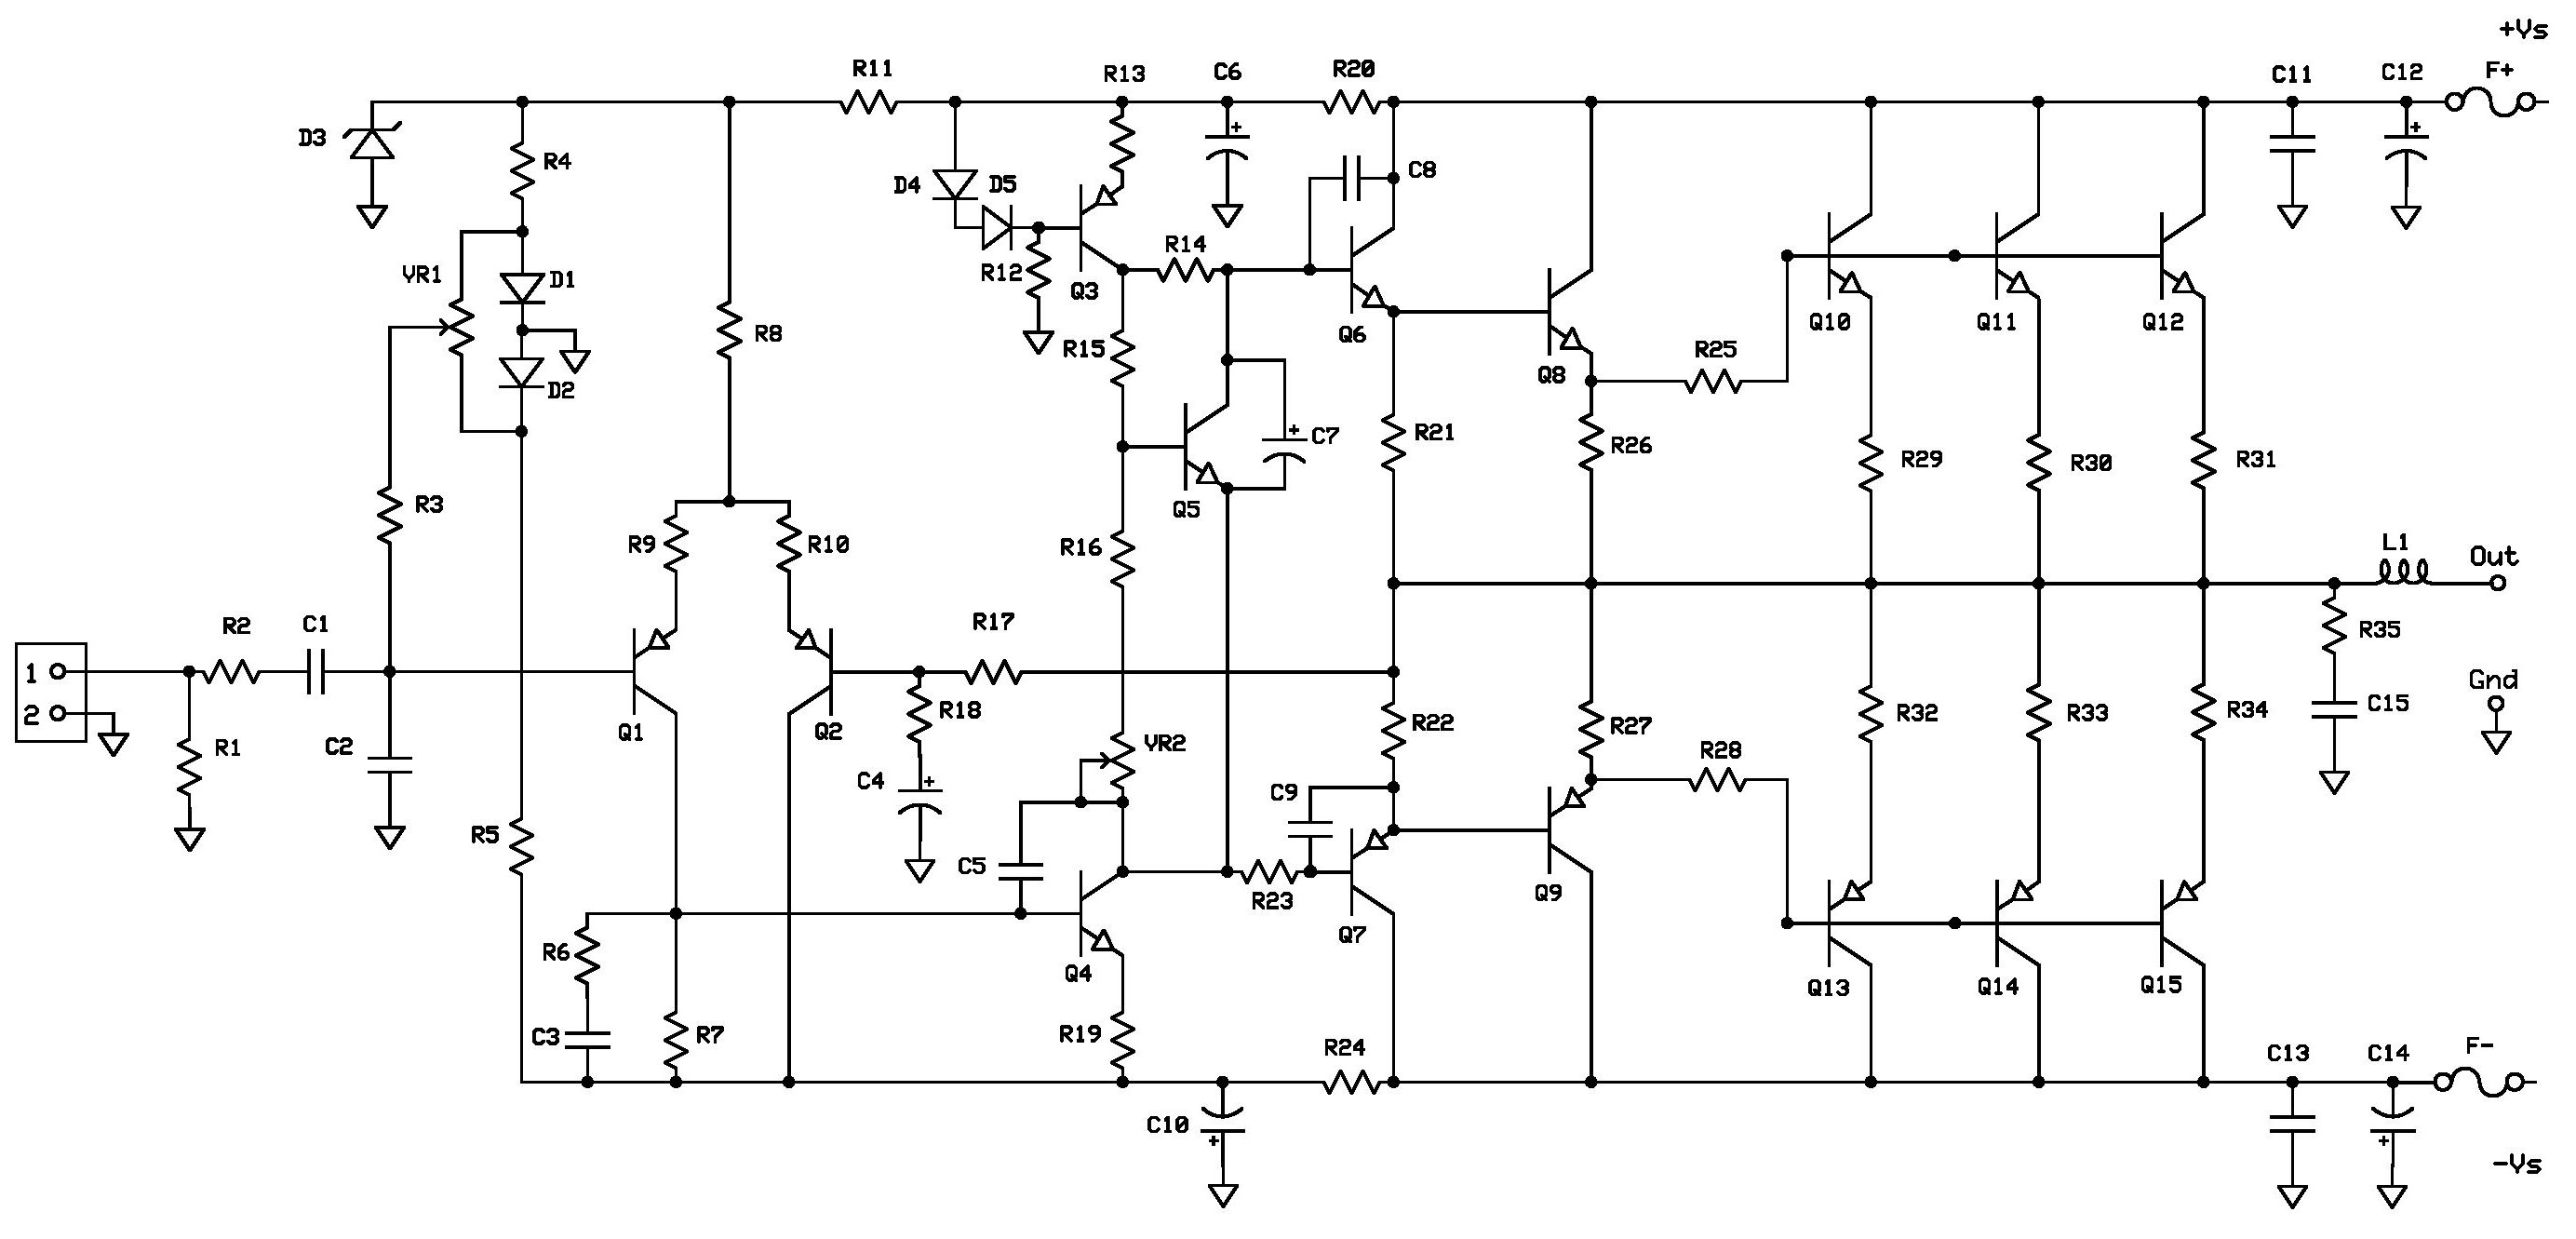 T Amp Circuit Diagram Wiring Library Hammond Organ Project2 Schematic Page 001